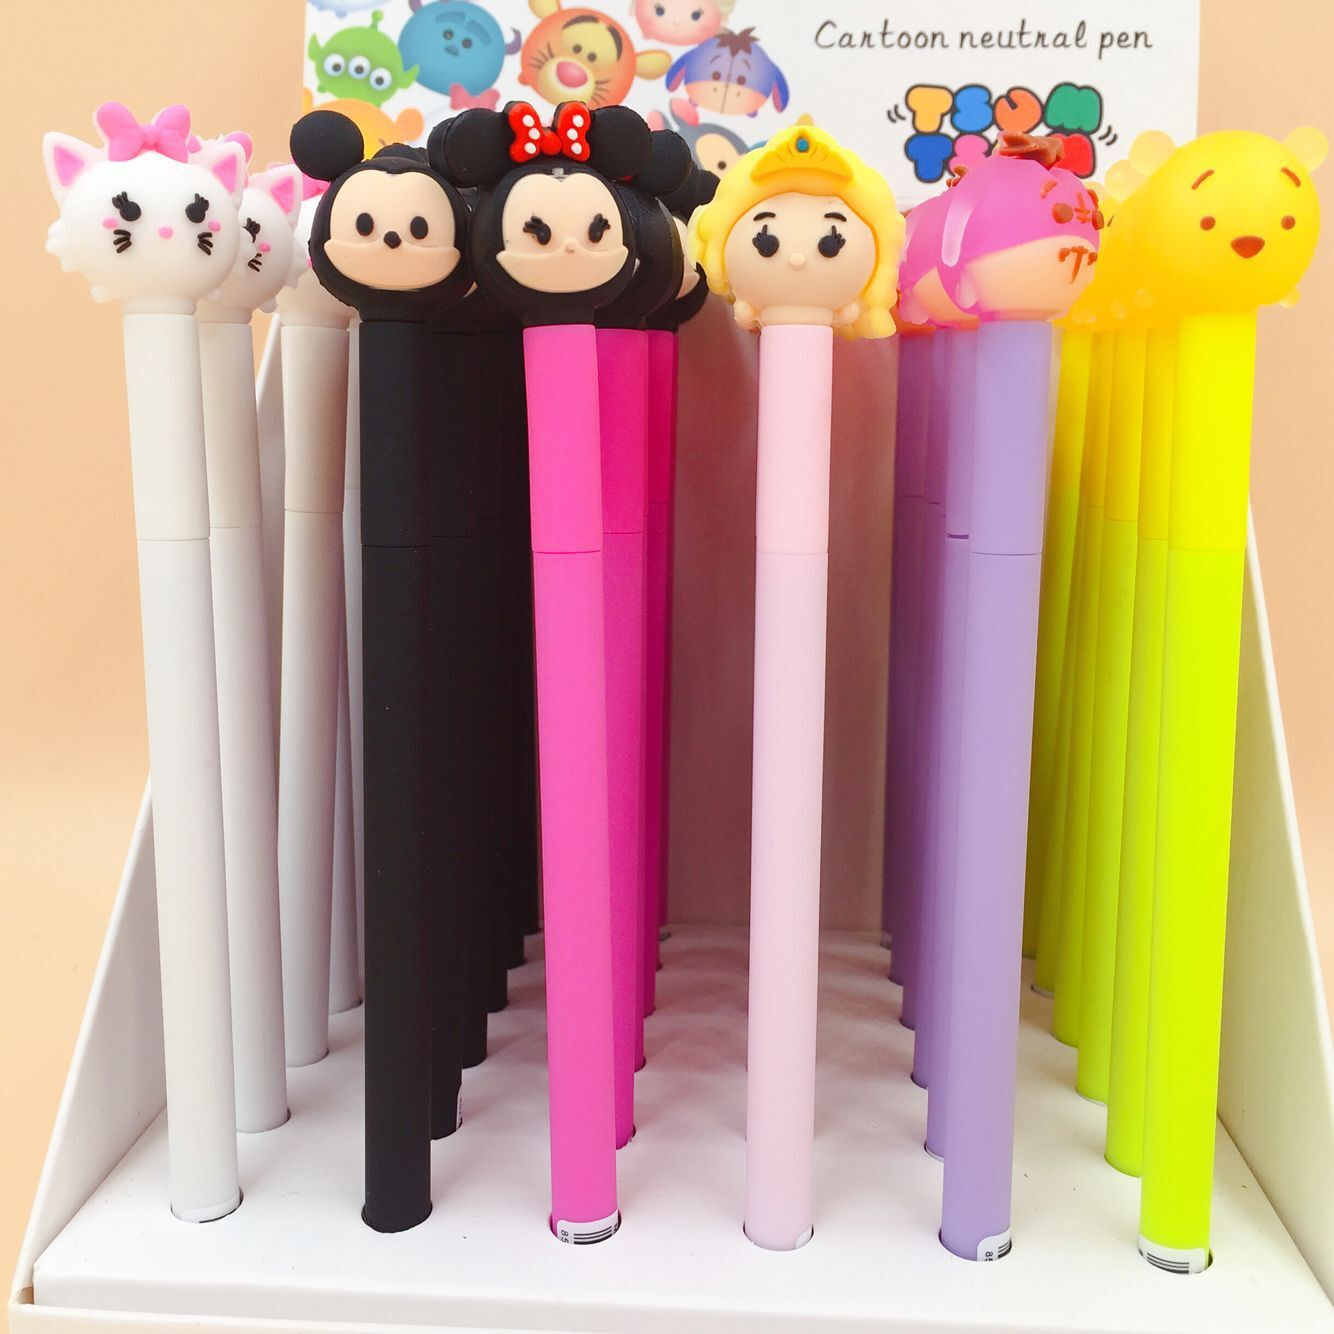 6 pcs/lot Cartoon Happiness Family Gel Pen Signature Pen Escolar Papelaria School Office Supply Promotional Gift 4 pcs lot novelty lovely my neighbor totoro gel ink pen papelaria escolar school office supply promotional gift signature pens